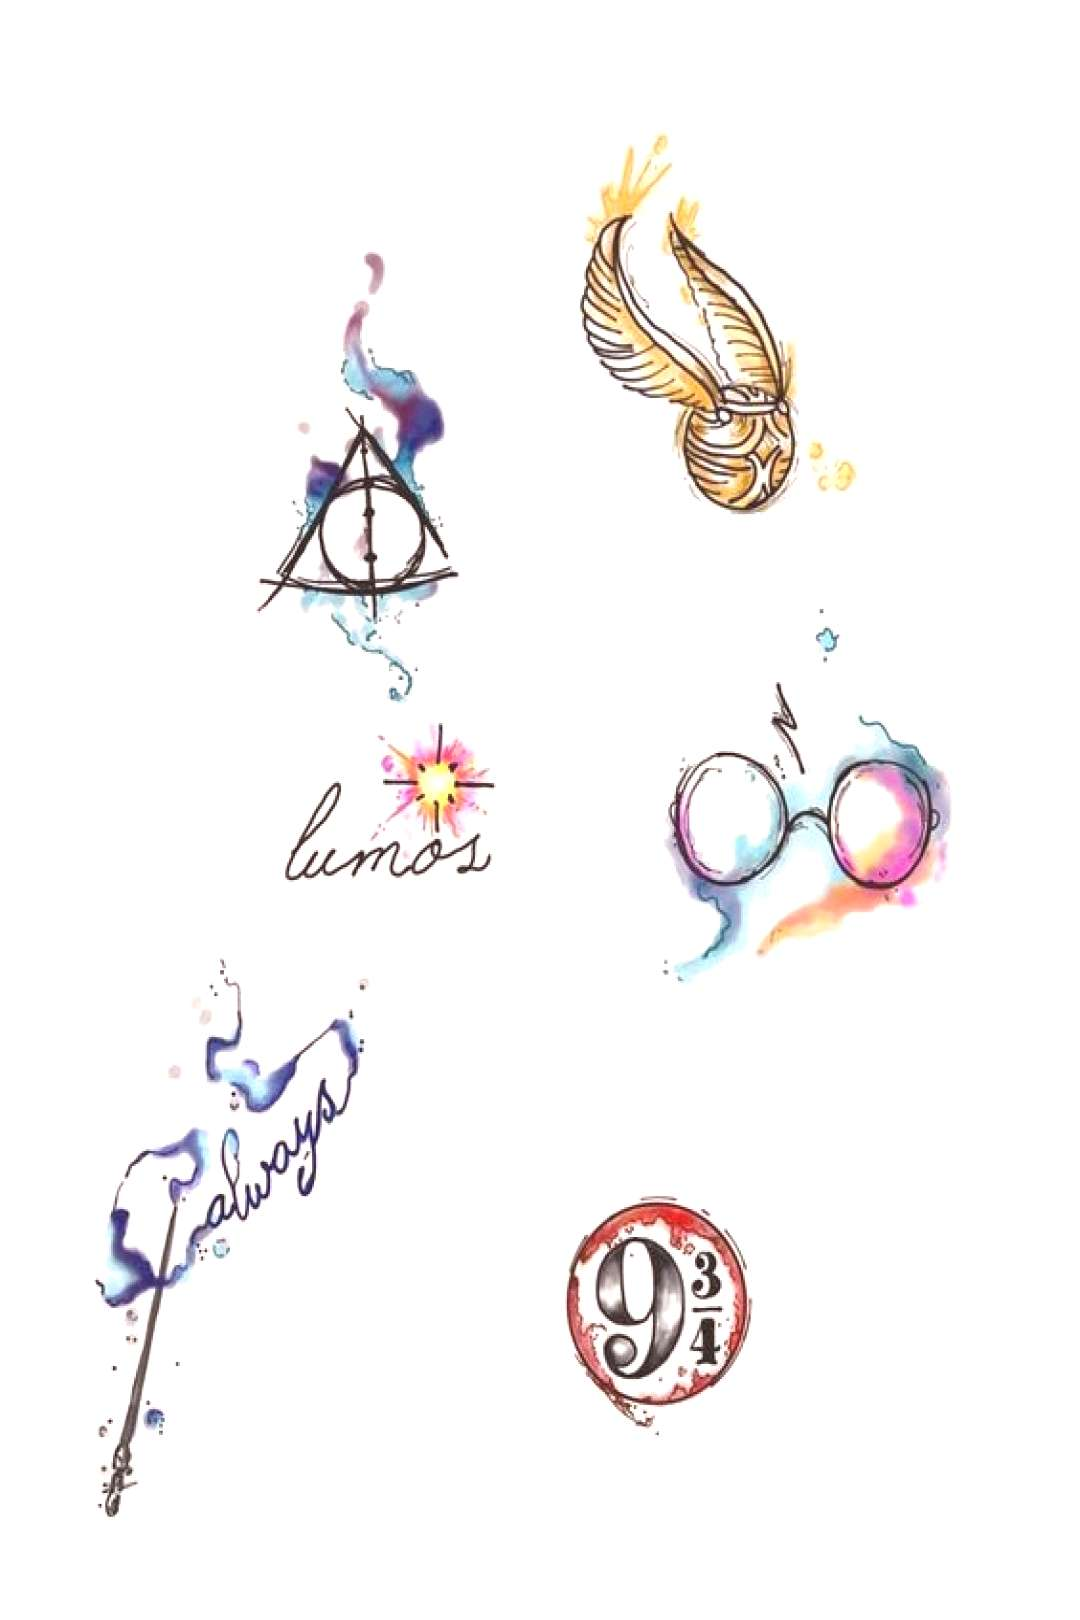 59 Harry Potter tattoos by Lady Pirates Harry Potter tattoos by Lady Pirates Tattoo Studio in Leig